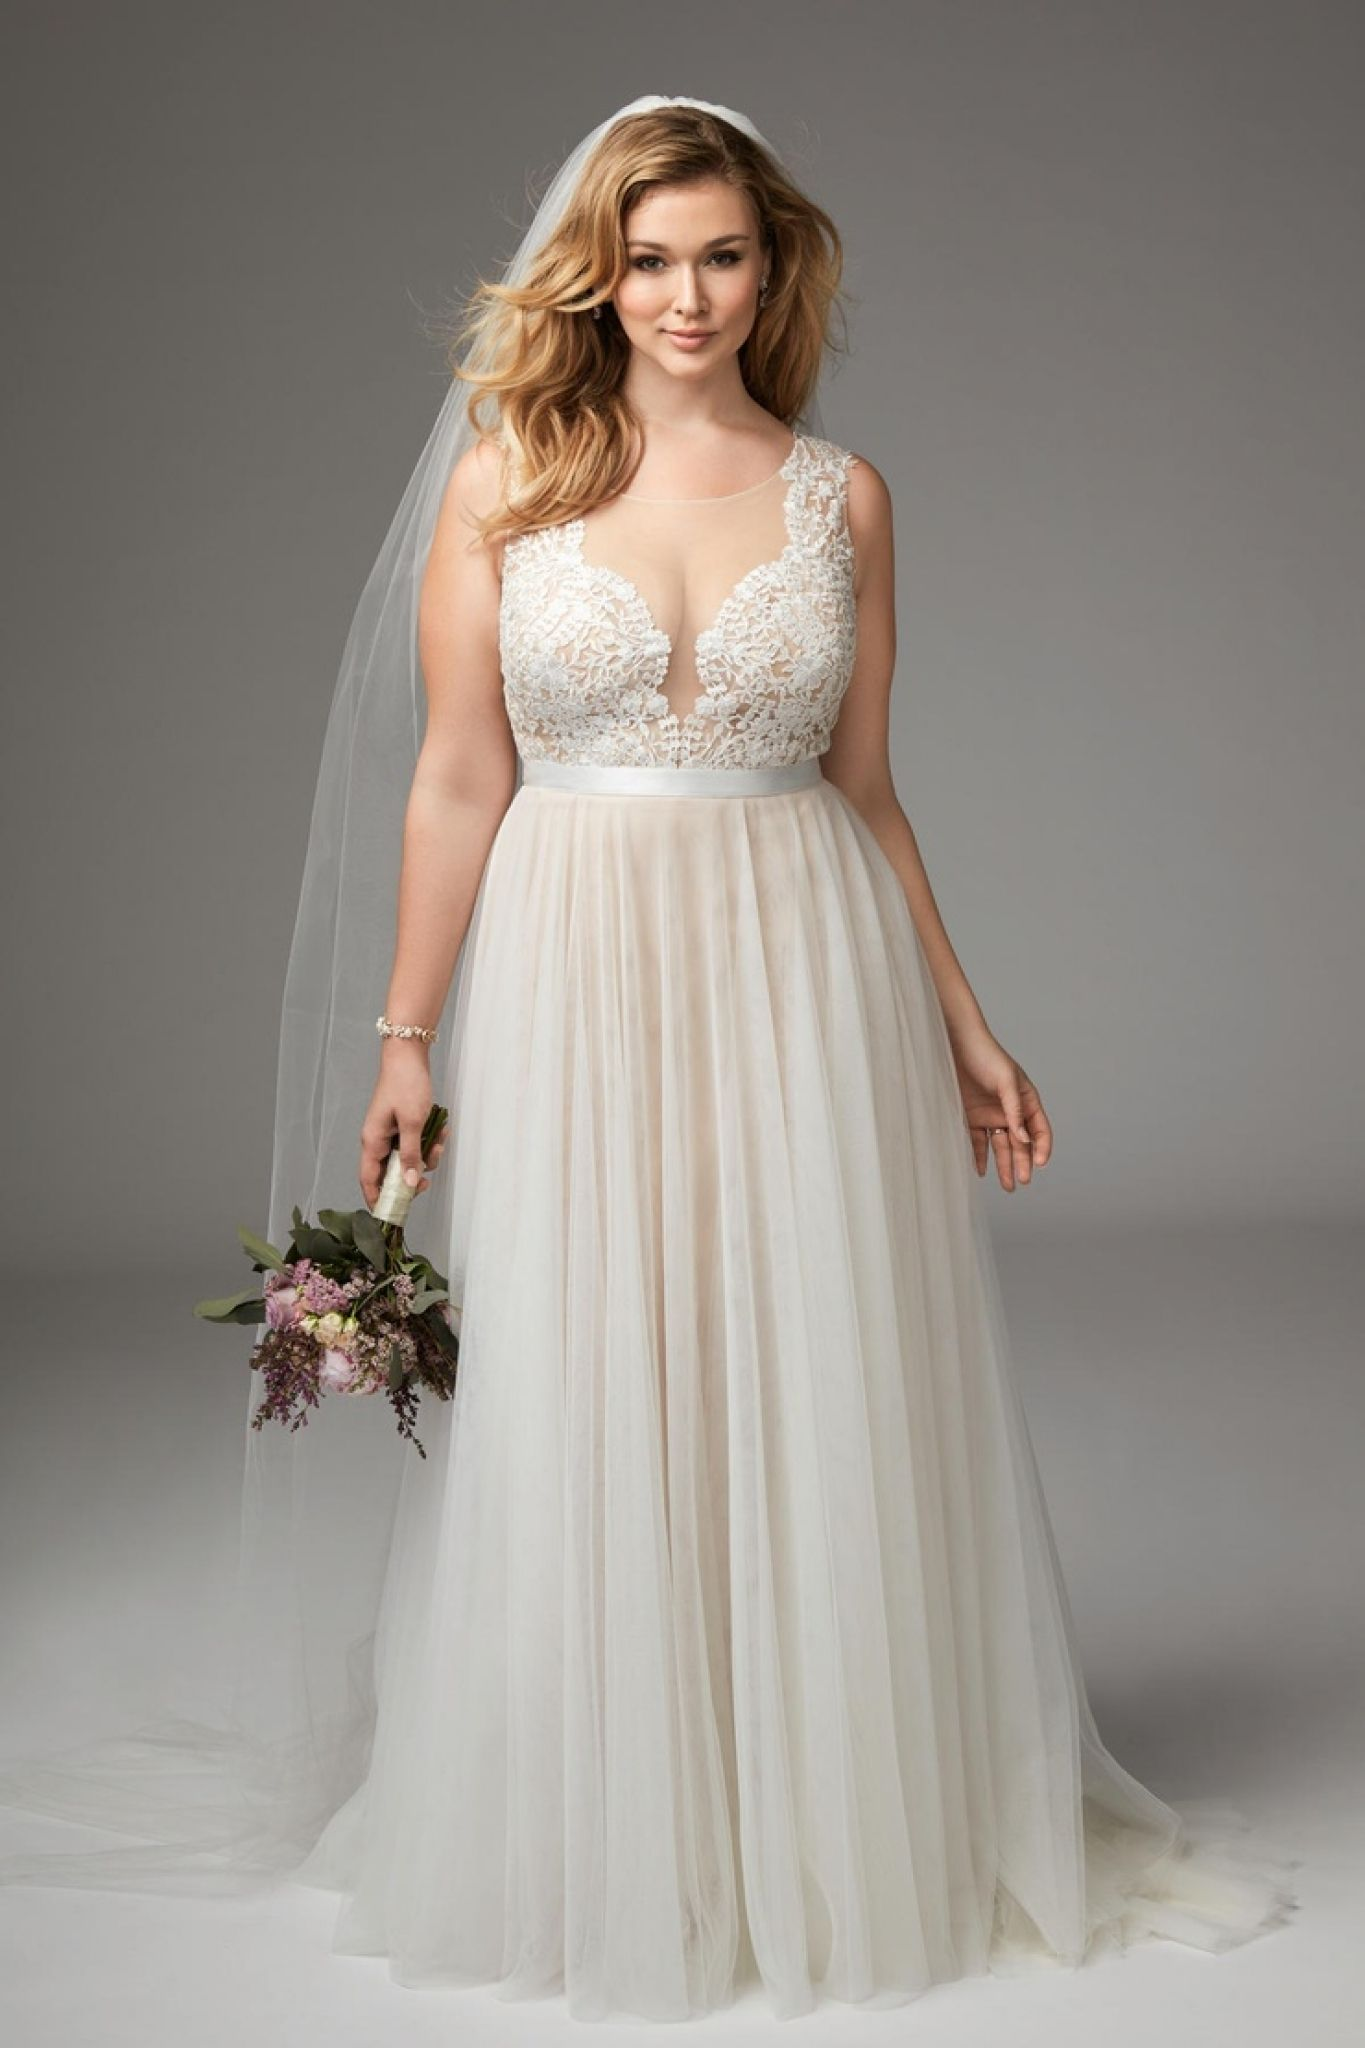 Plus size wedding dresses chicago wedding dresses for fall check